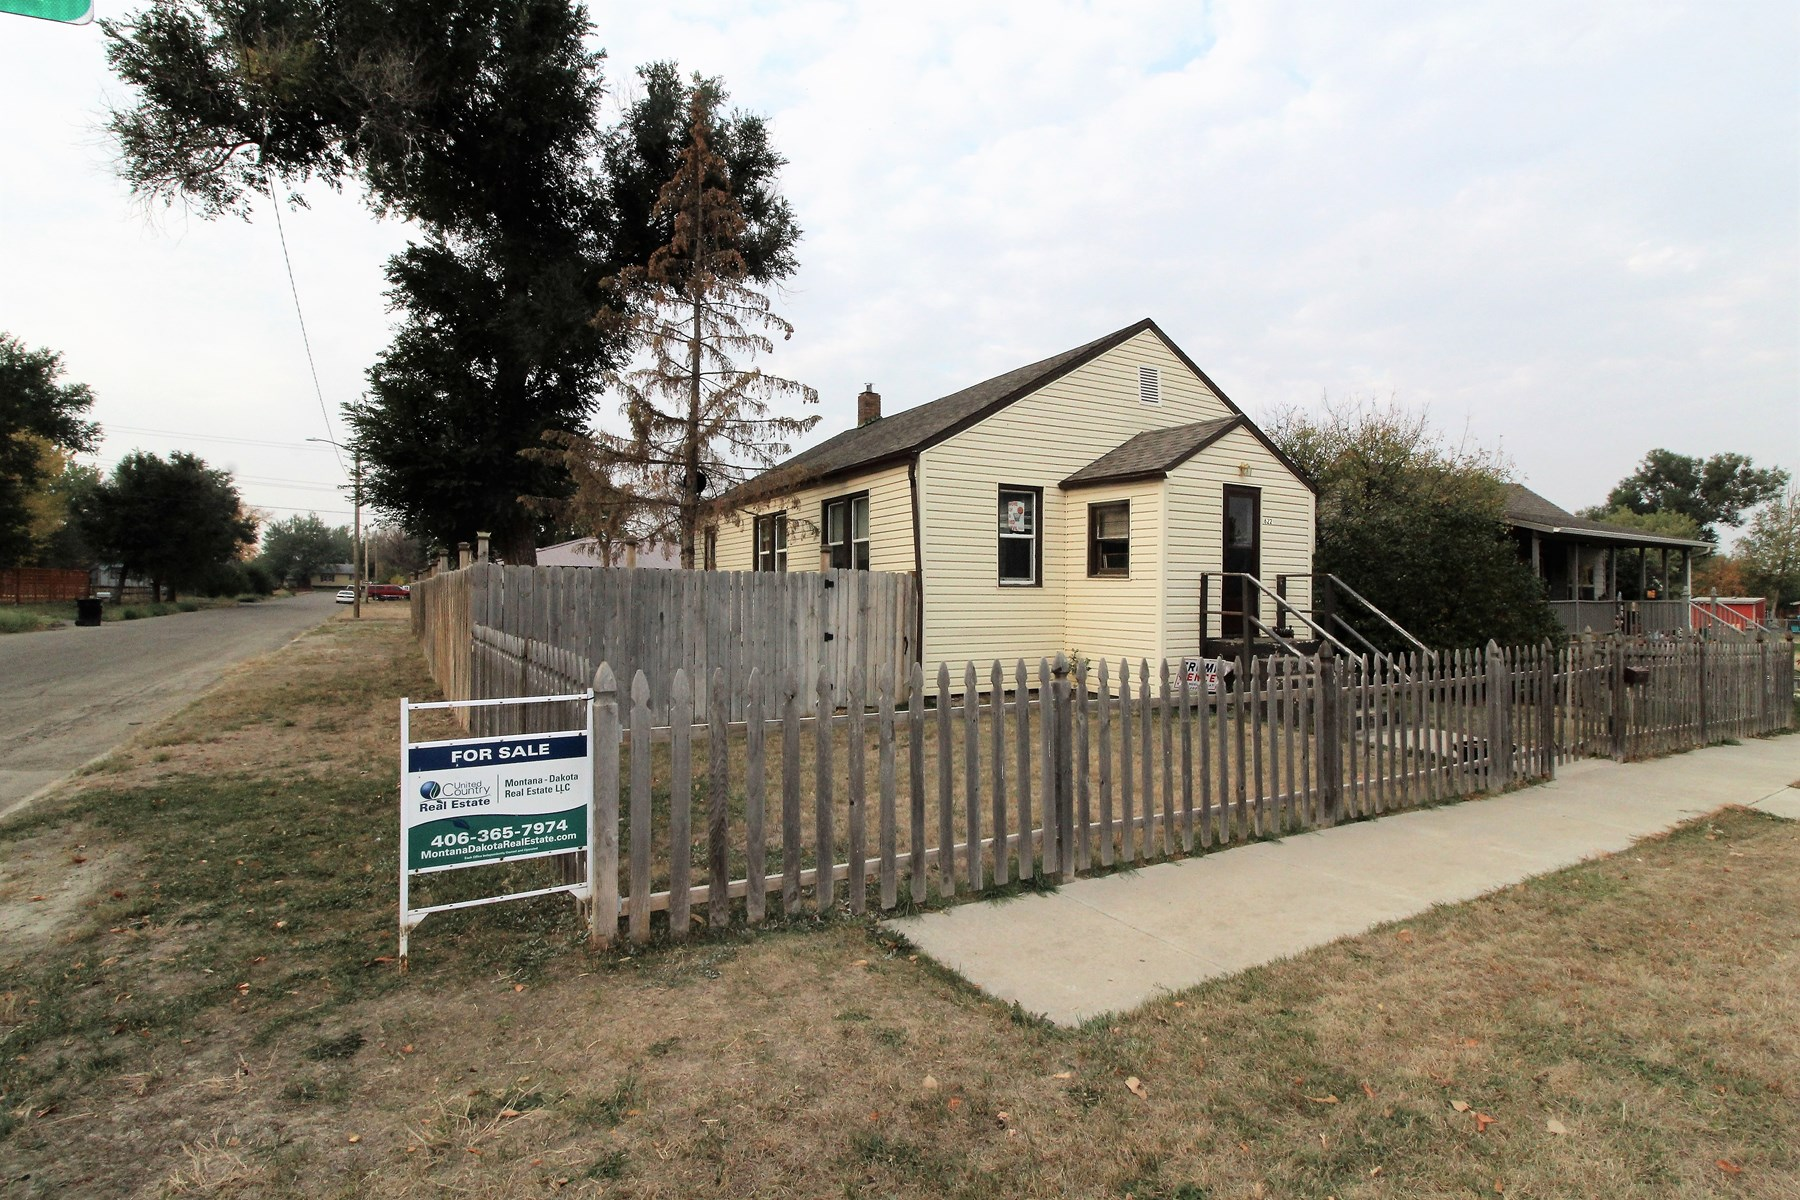 4 Bedroom 2 Bath Home with Double Stall Detached Garage